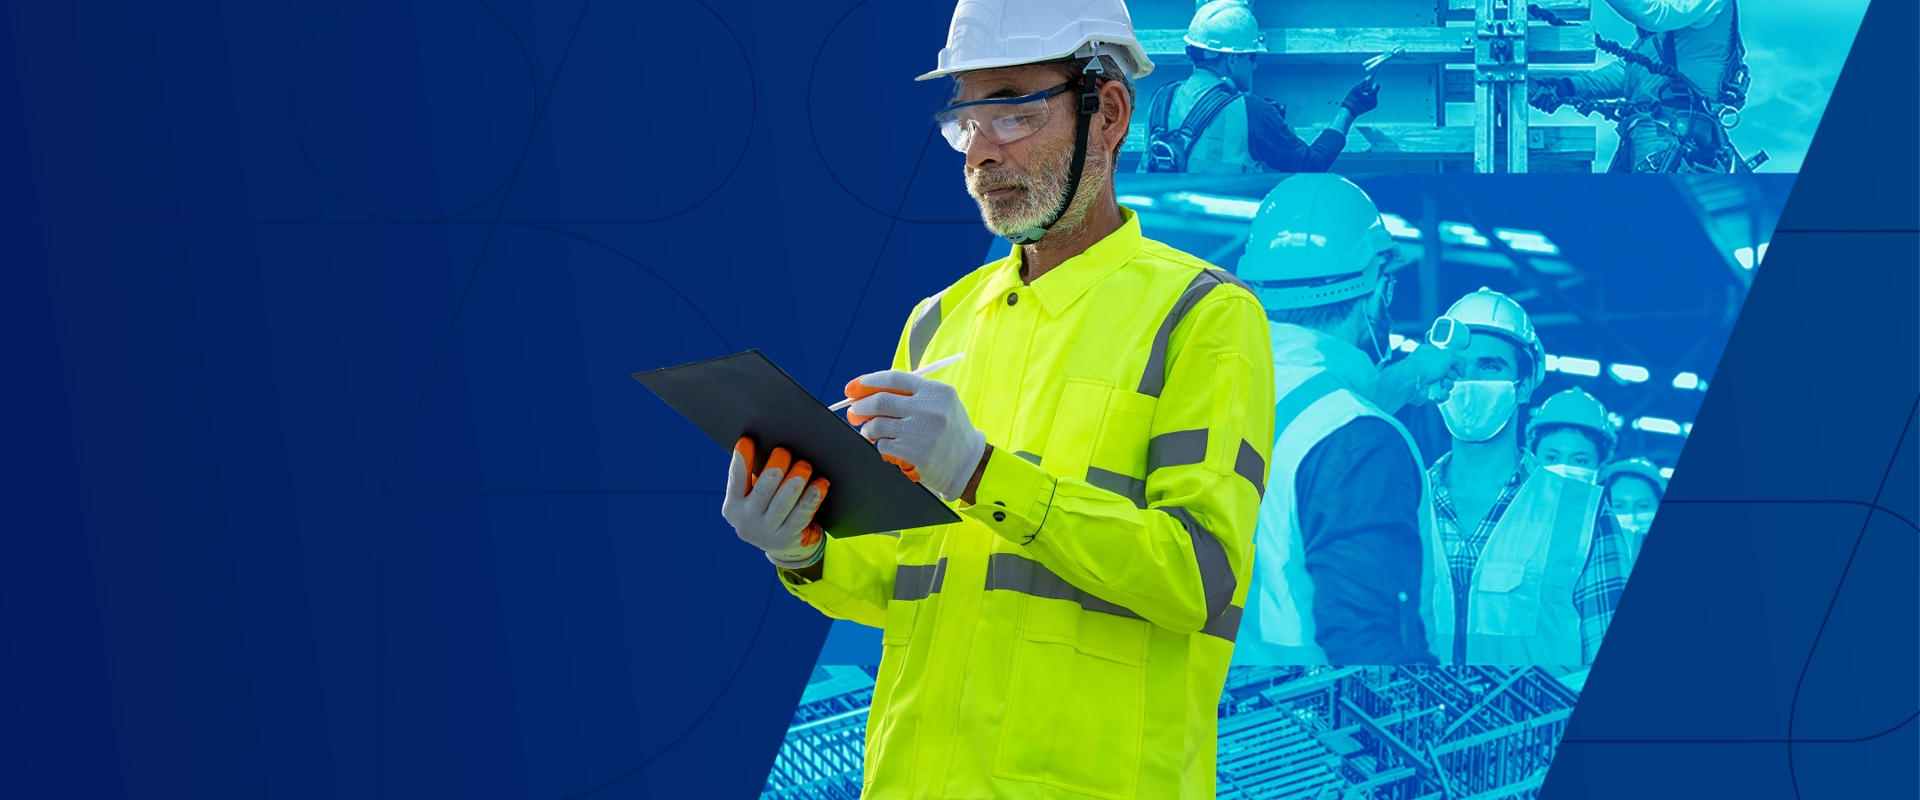 1440x600-resource-landing-page-banner_subcontractor-3x